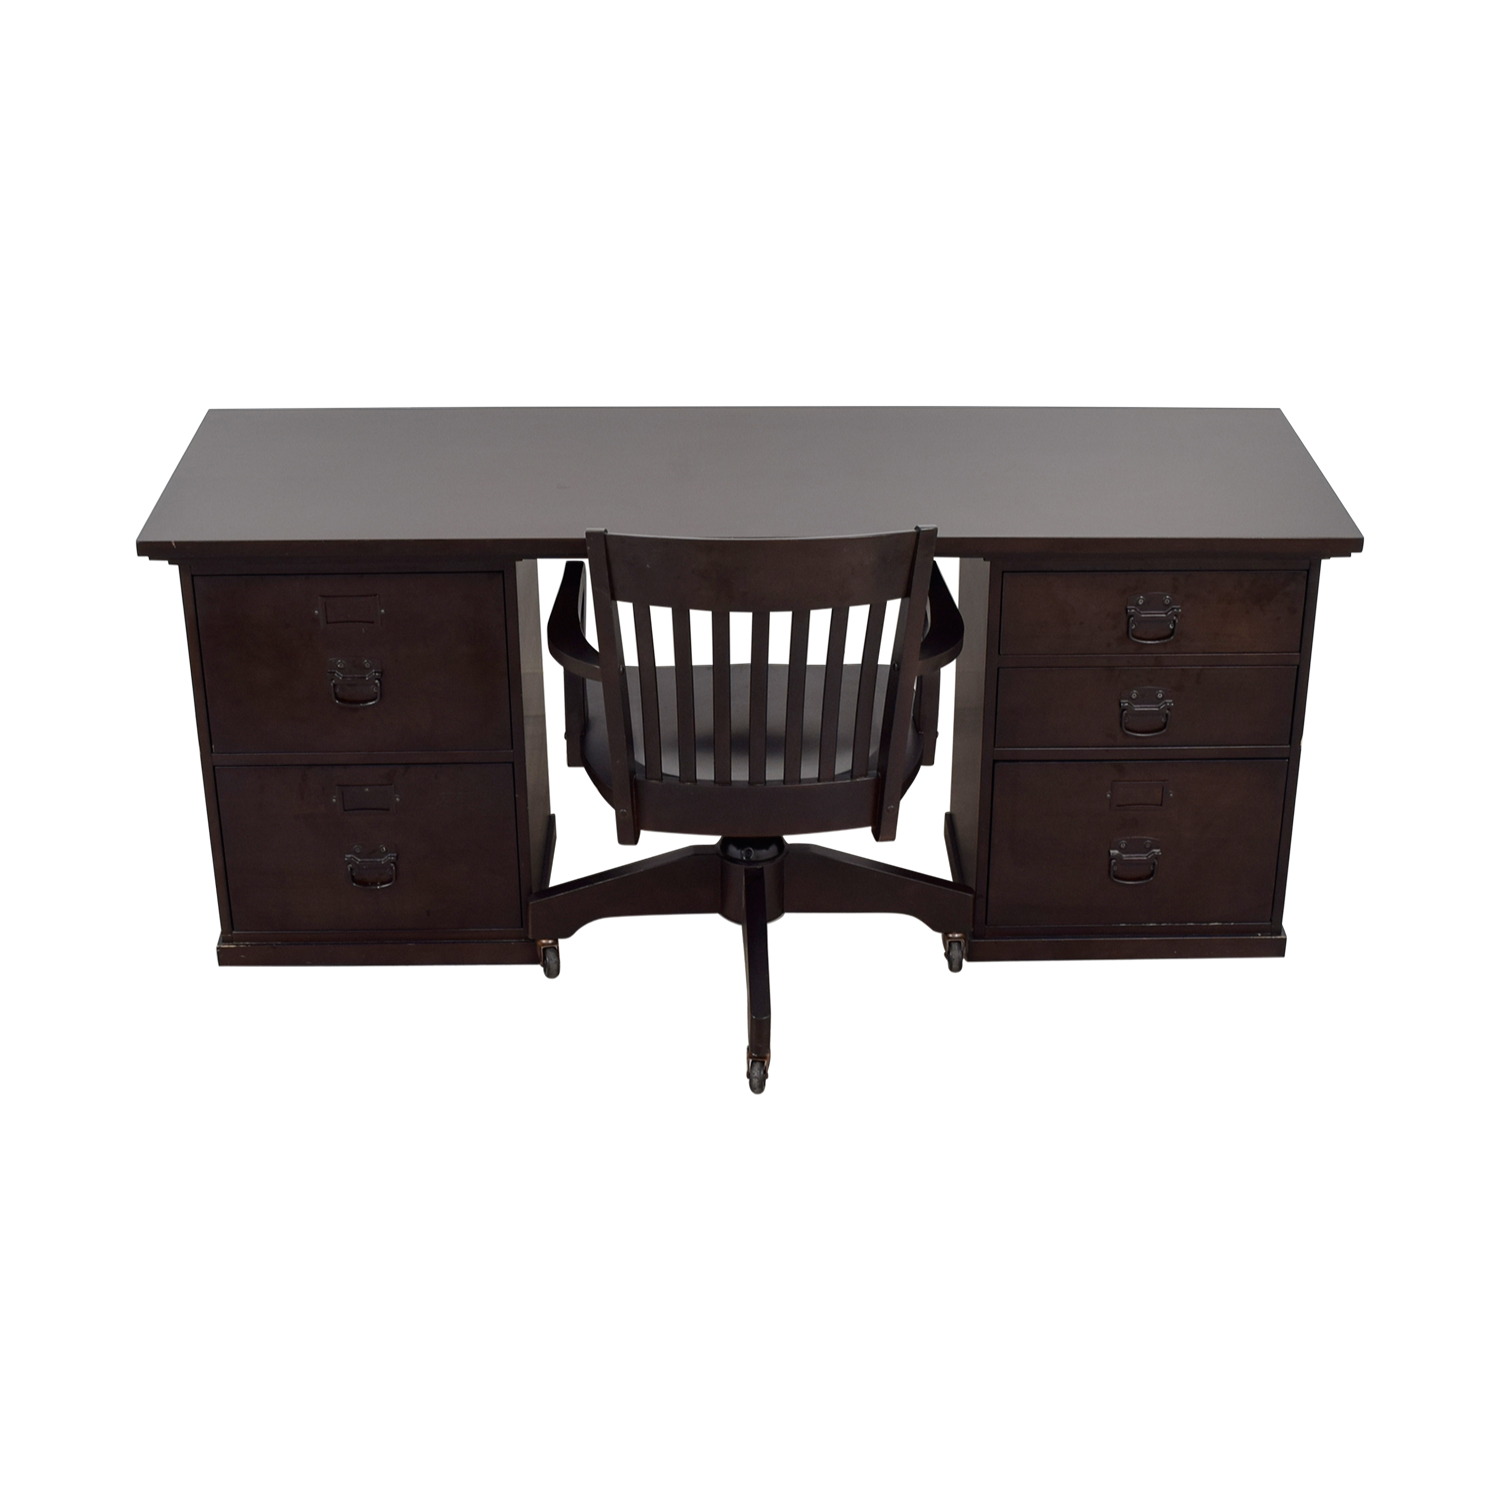 Pottery Barn Espresso Bedford Five Drawer Rectangular Desk with Chair / Sofas